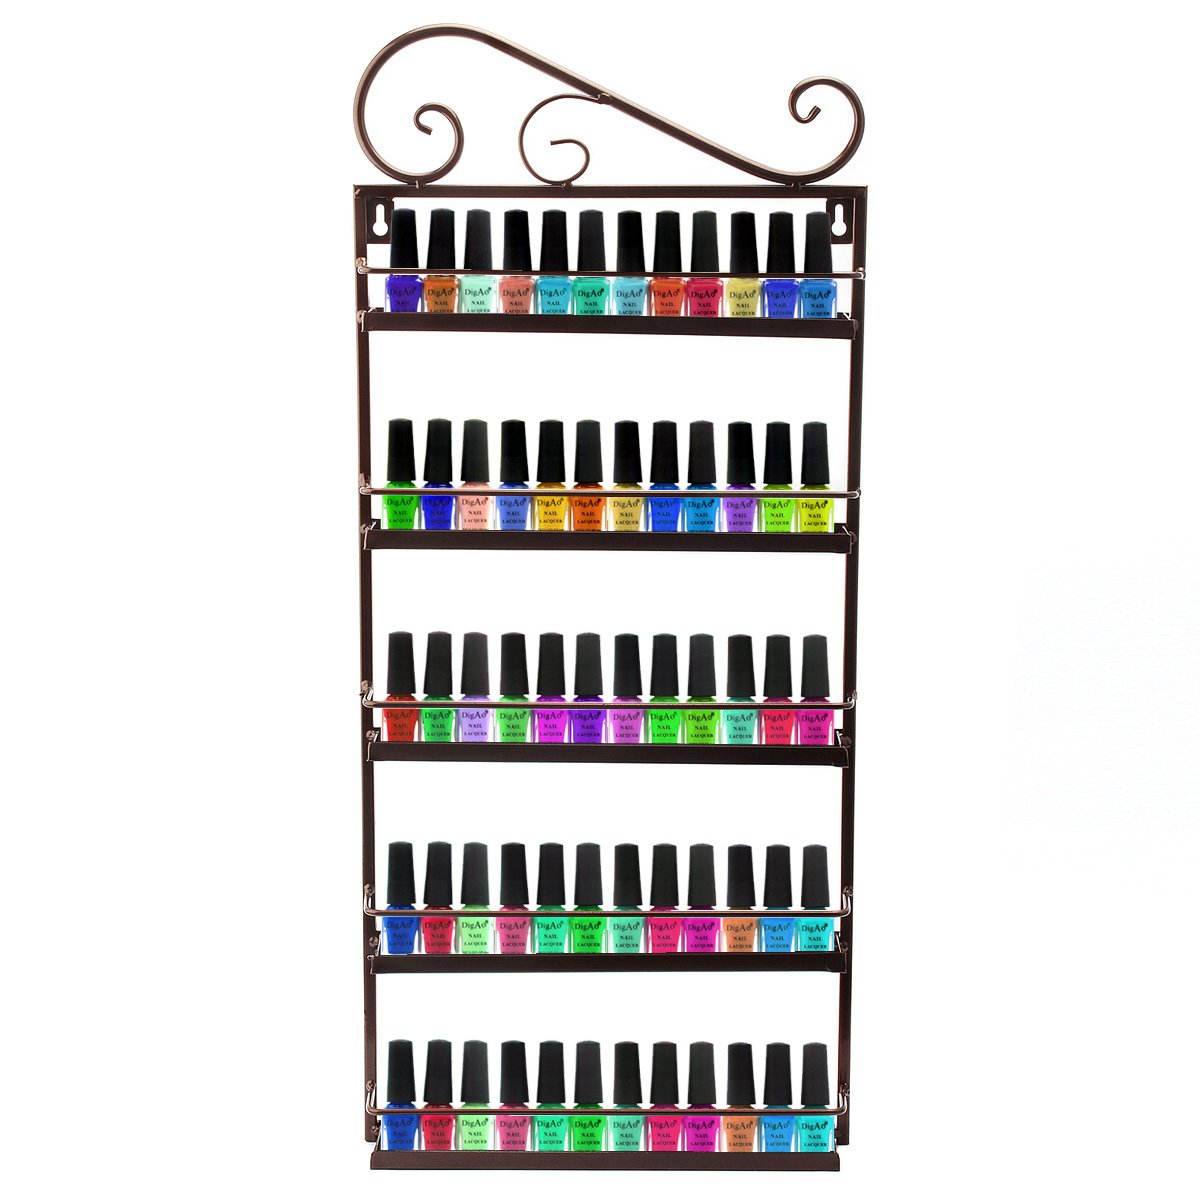 Dazone DIY Metal Nail Polish Mountable 5 Tier Organizer Nail Polish Wall Rack Organizer Holds 50 Bottles Nail Polish (Bronze)